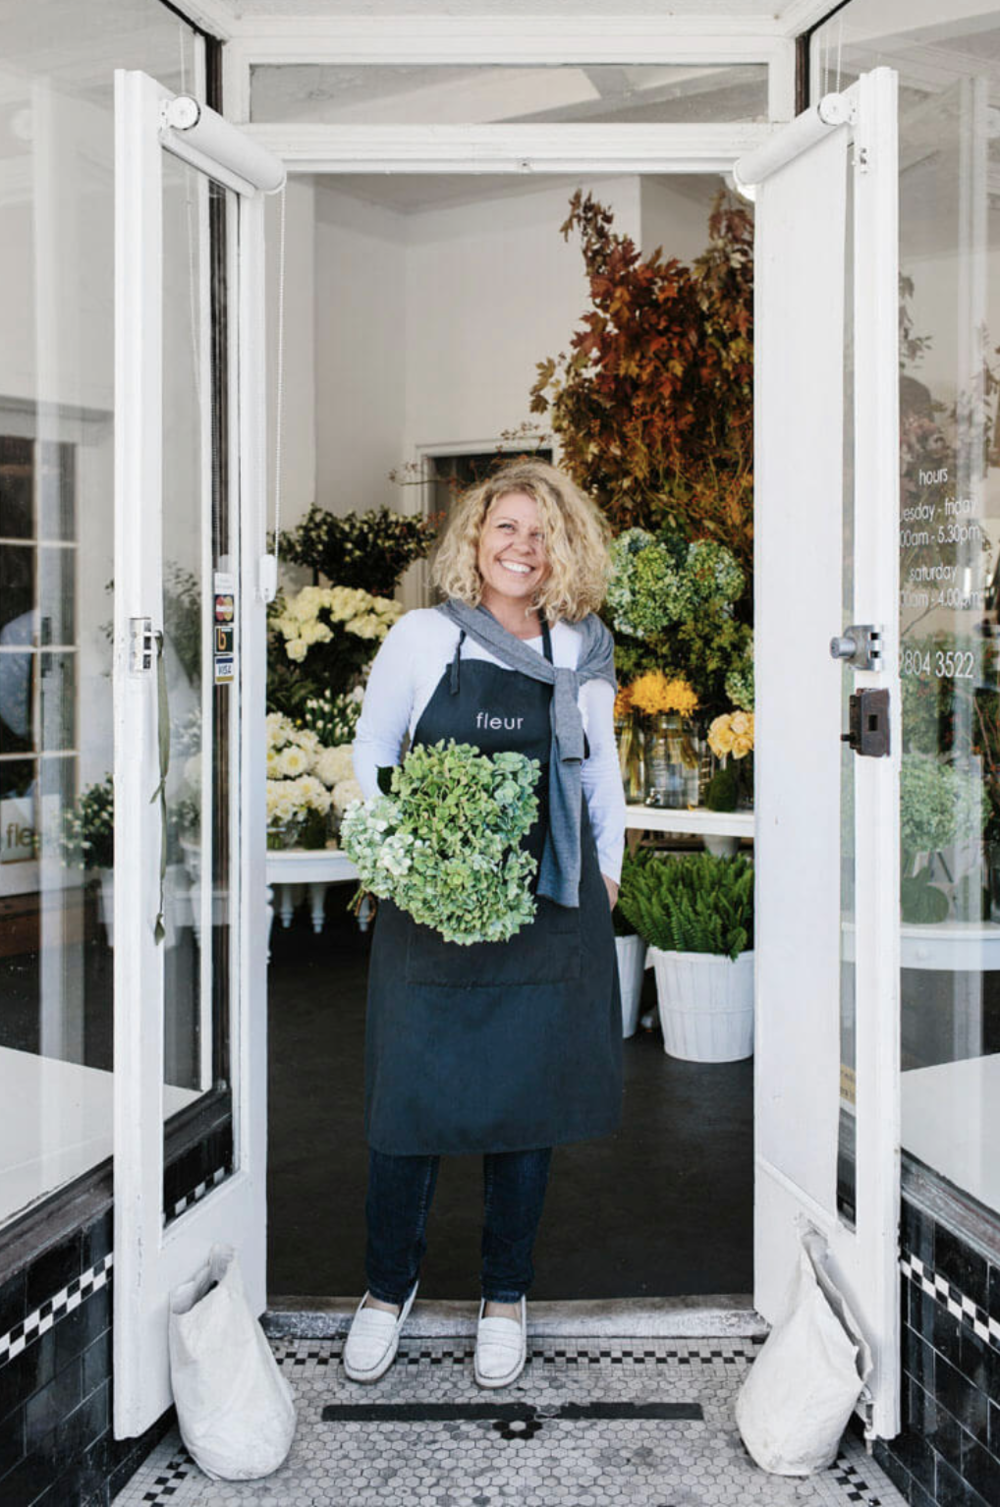 Armadale's Fleur McHarg is your answer for beautiful private events - be it an intimate dinner or international wedding!  Visit fleurs.com.au